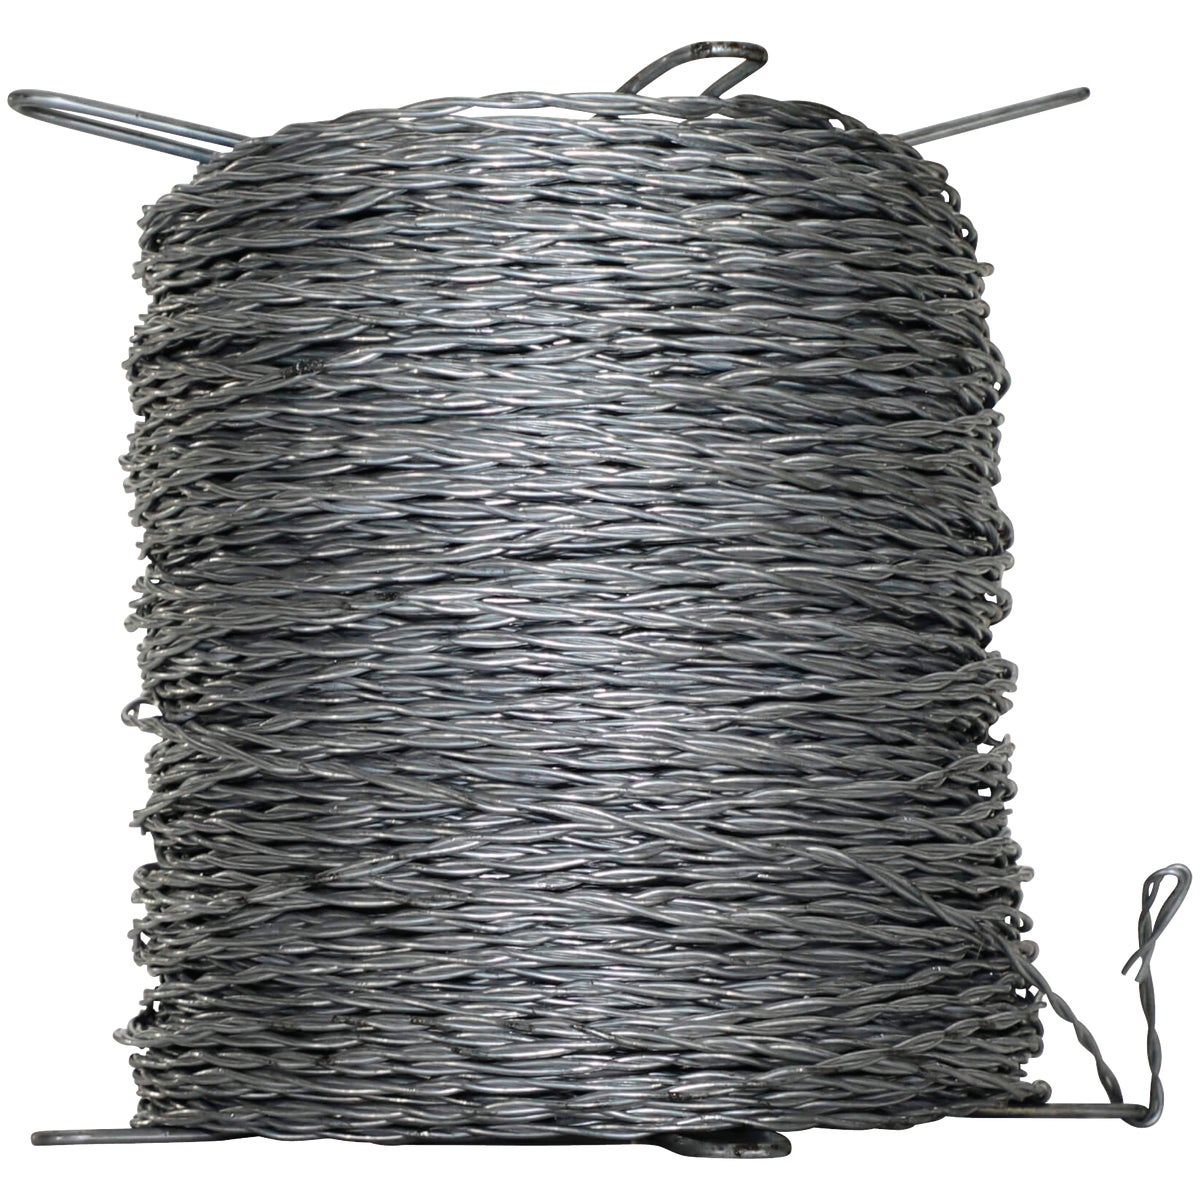 12-1/2GA BARBLESS WIRE